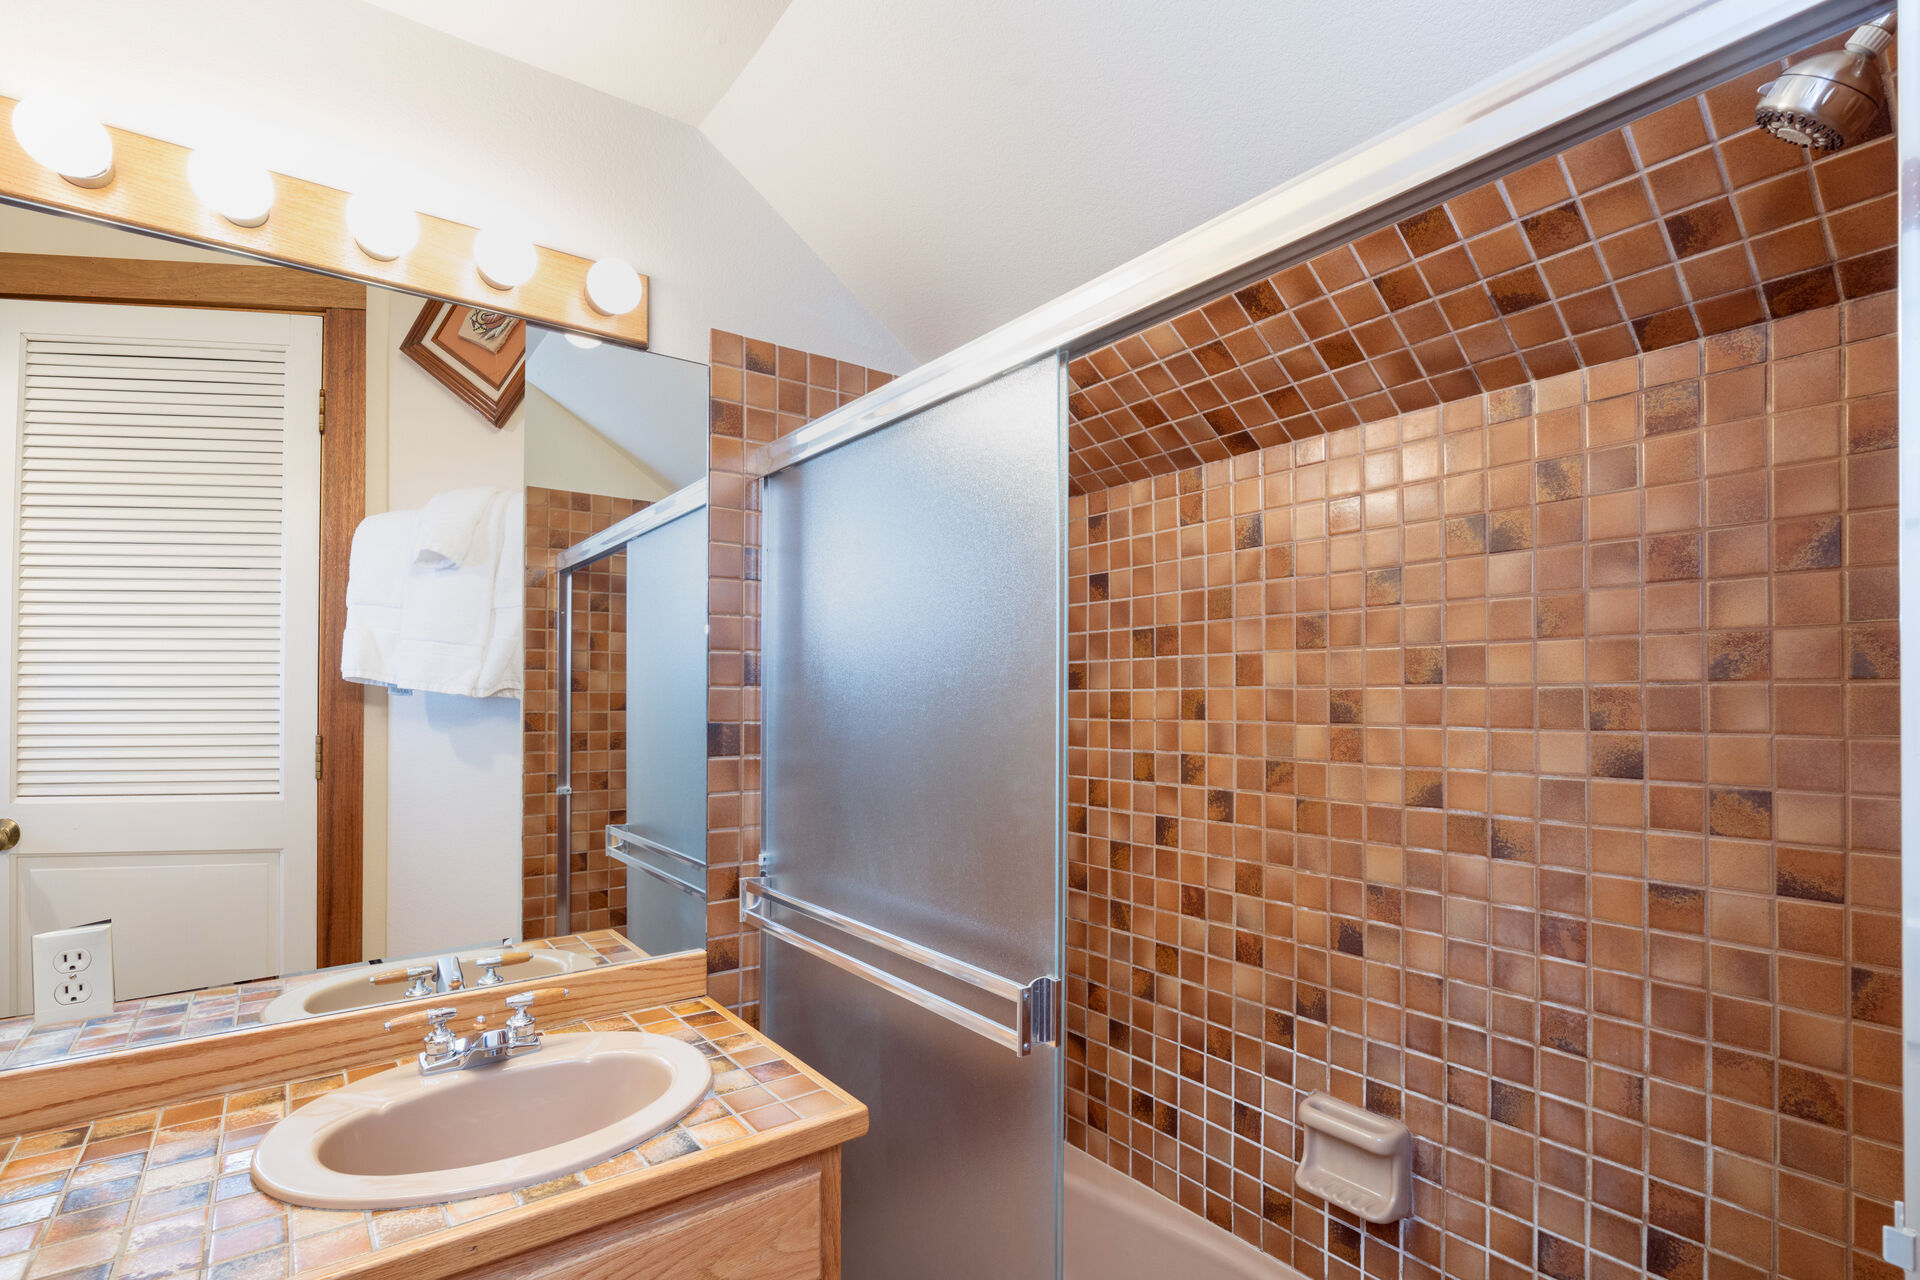 Second bathroom with a spacious walk in shower